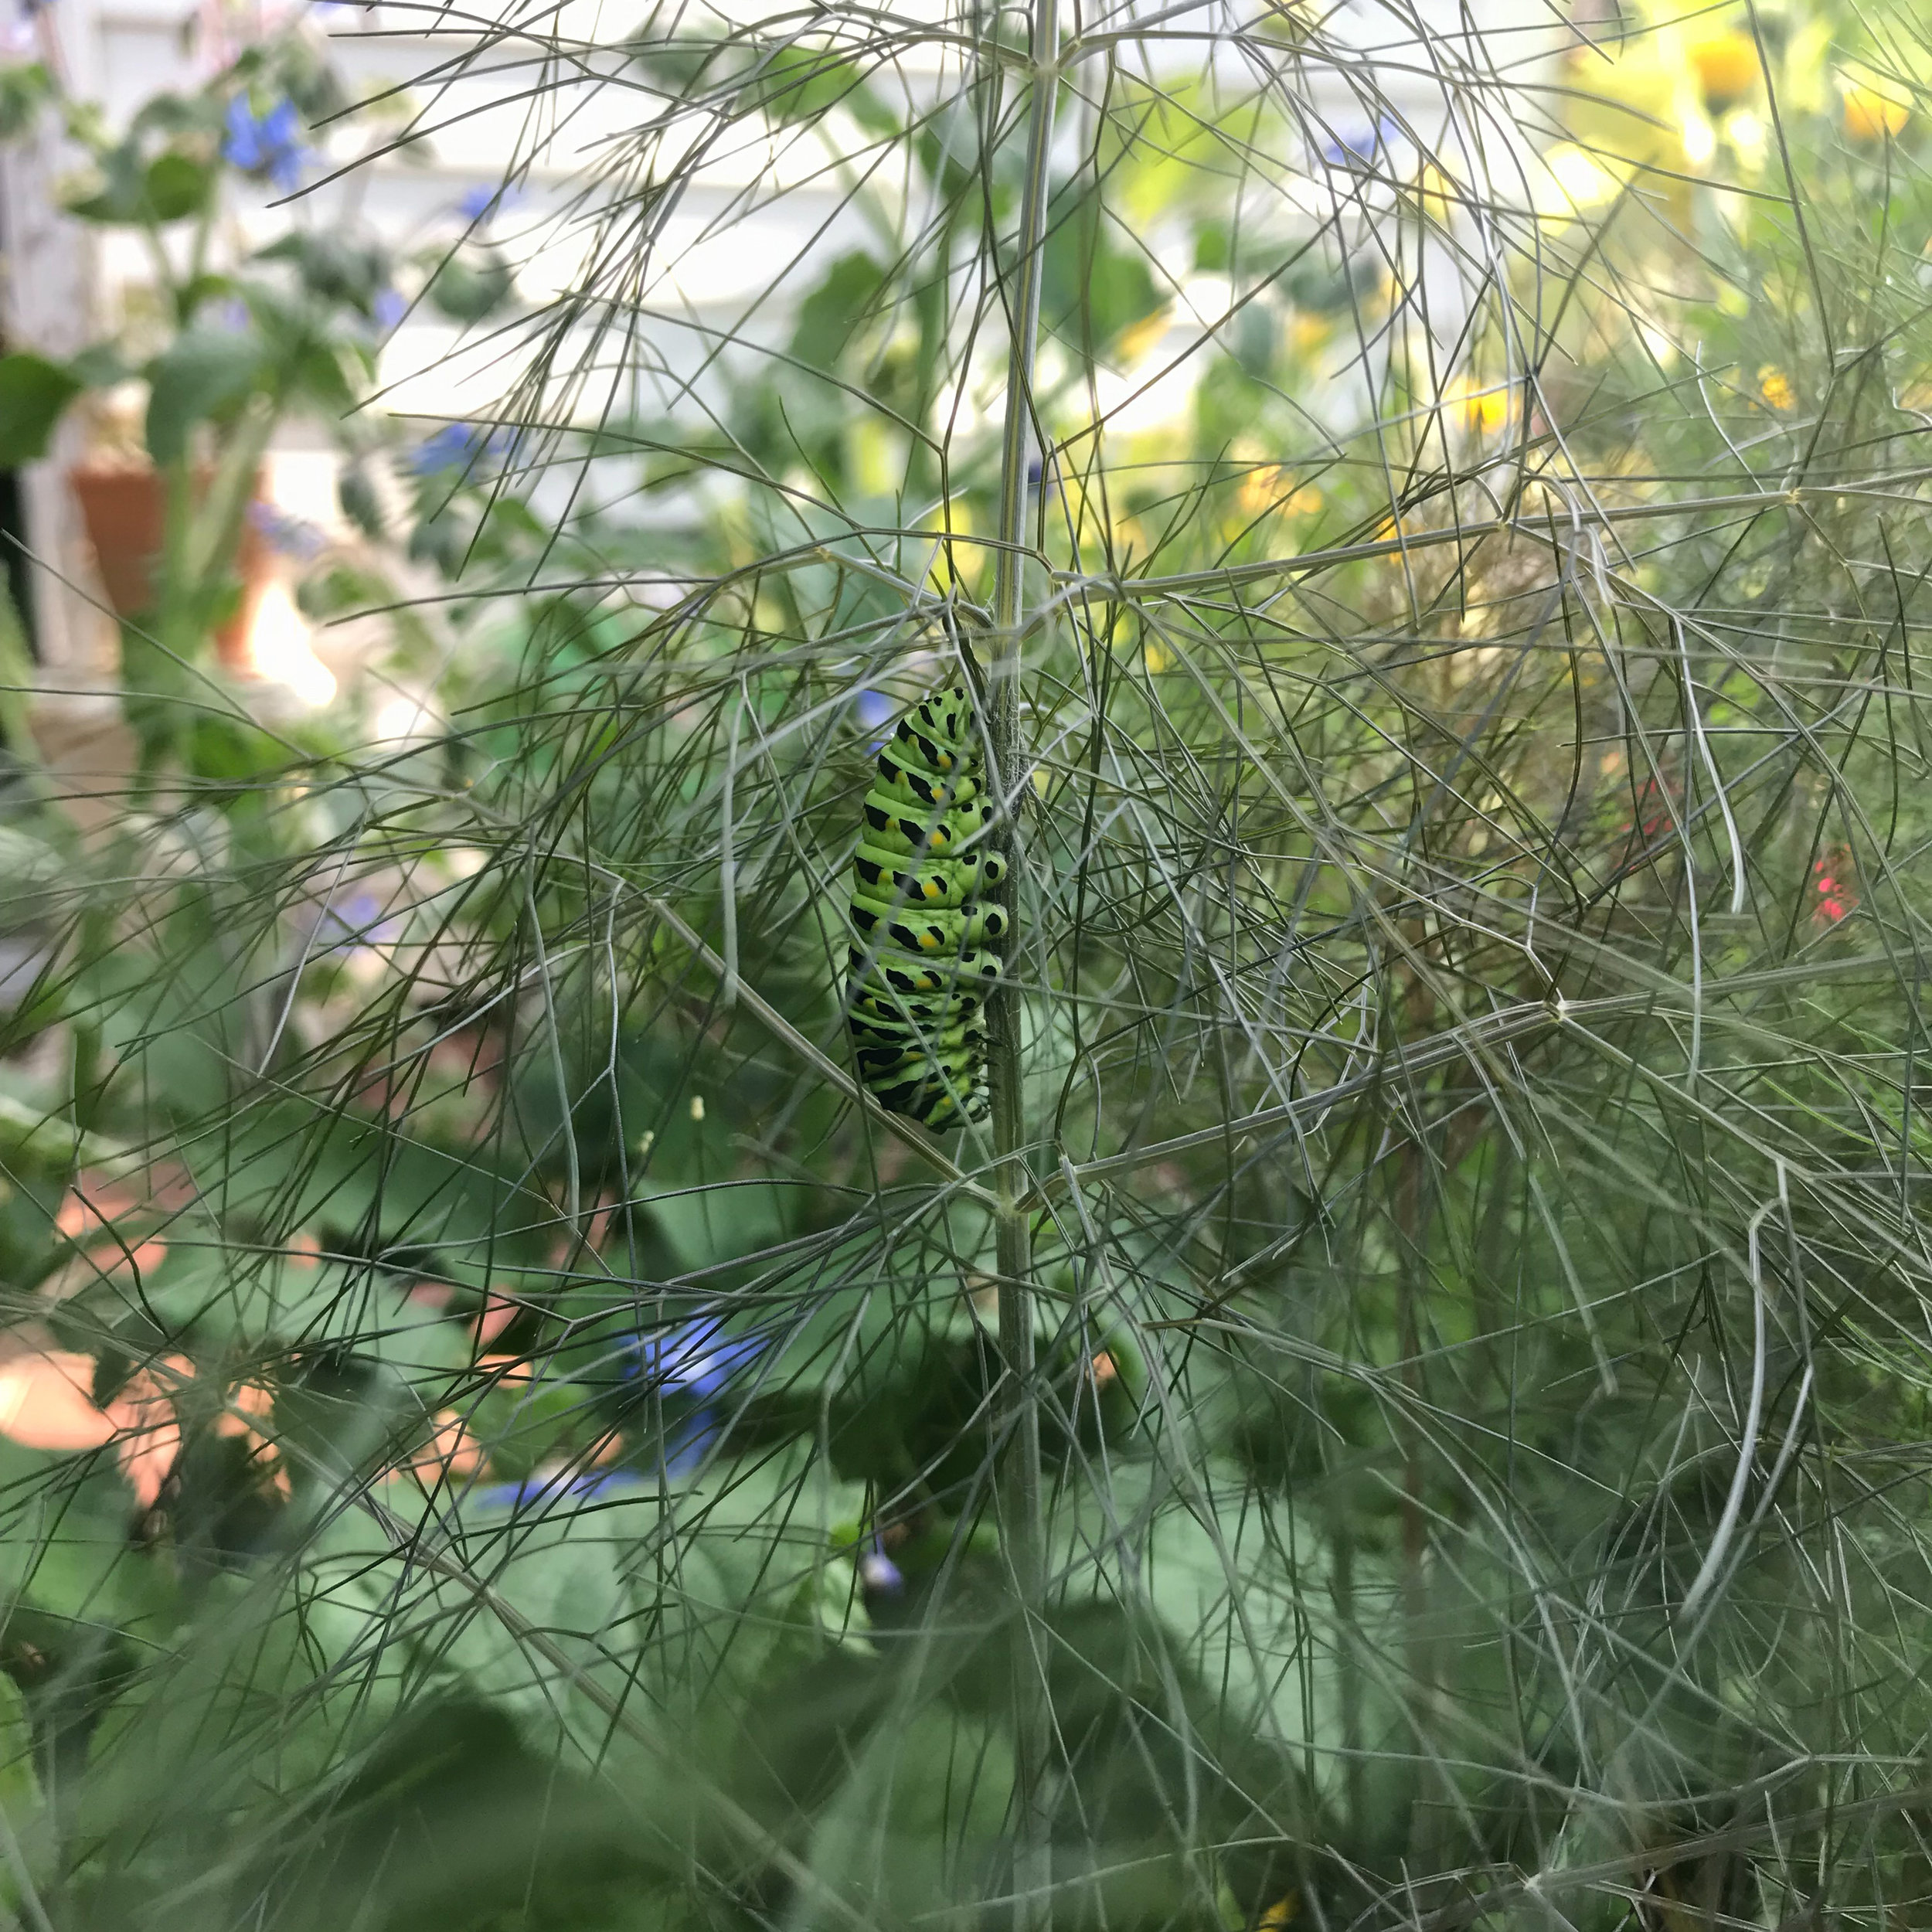 A Black Swallowtail Caterpillar Getting Ready to Pupate